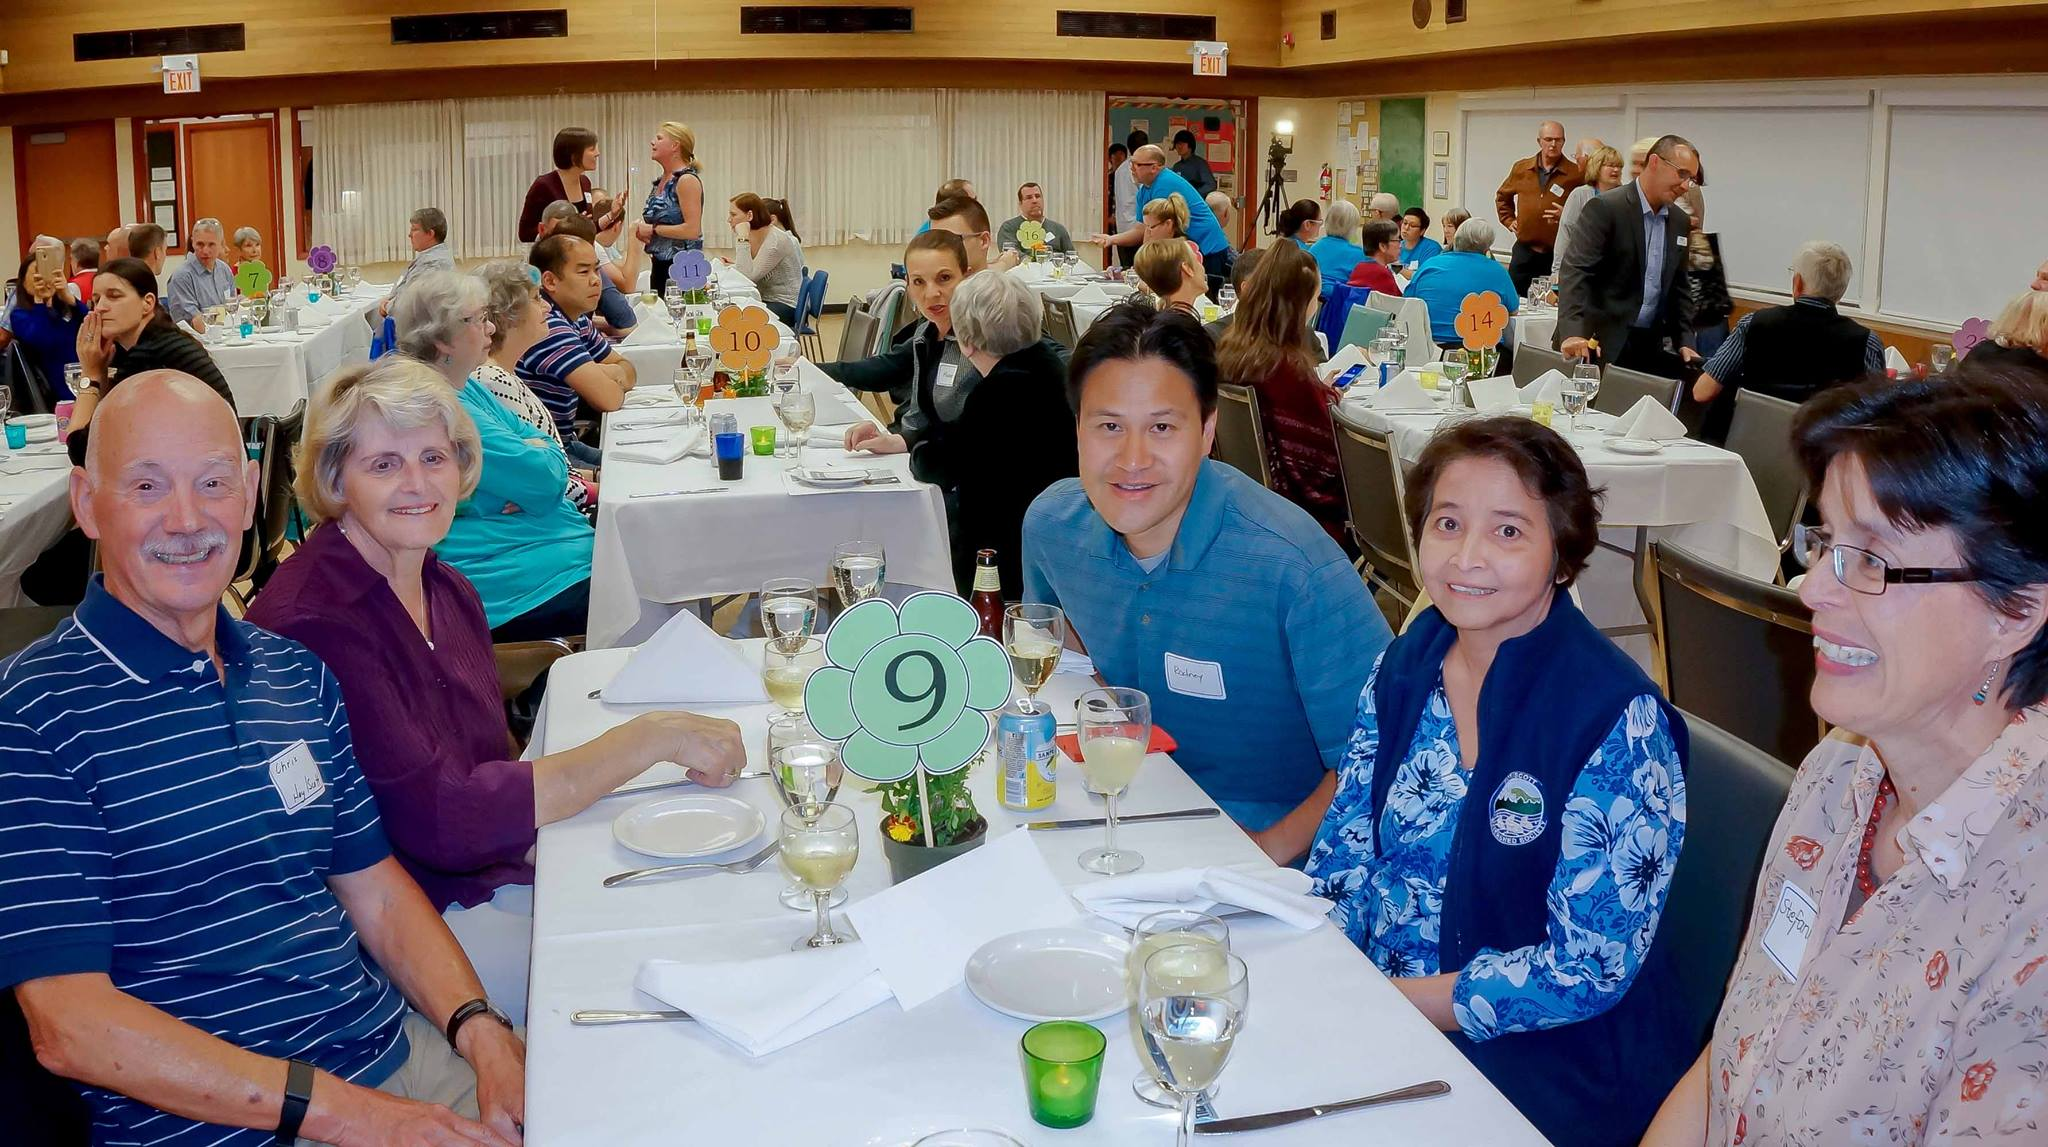 The two Hoy-Scott Watershed Society tables 9 and 10. (Photo: Ed Paulino / HSWS)